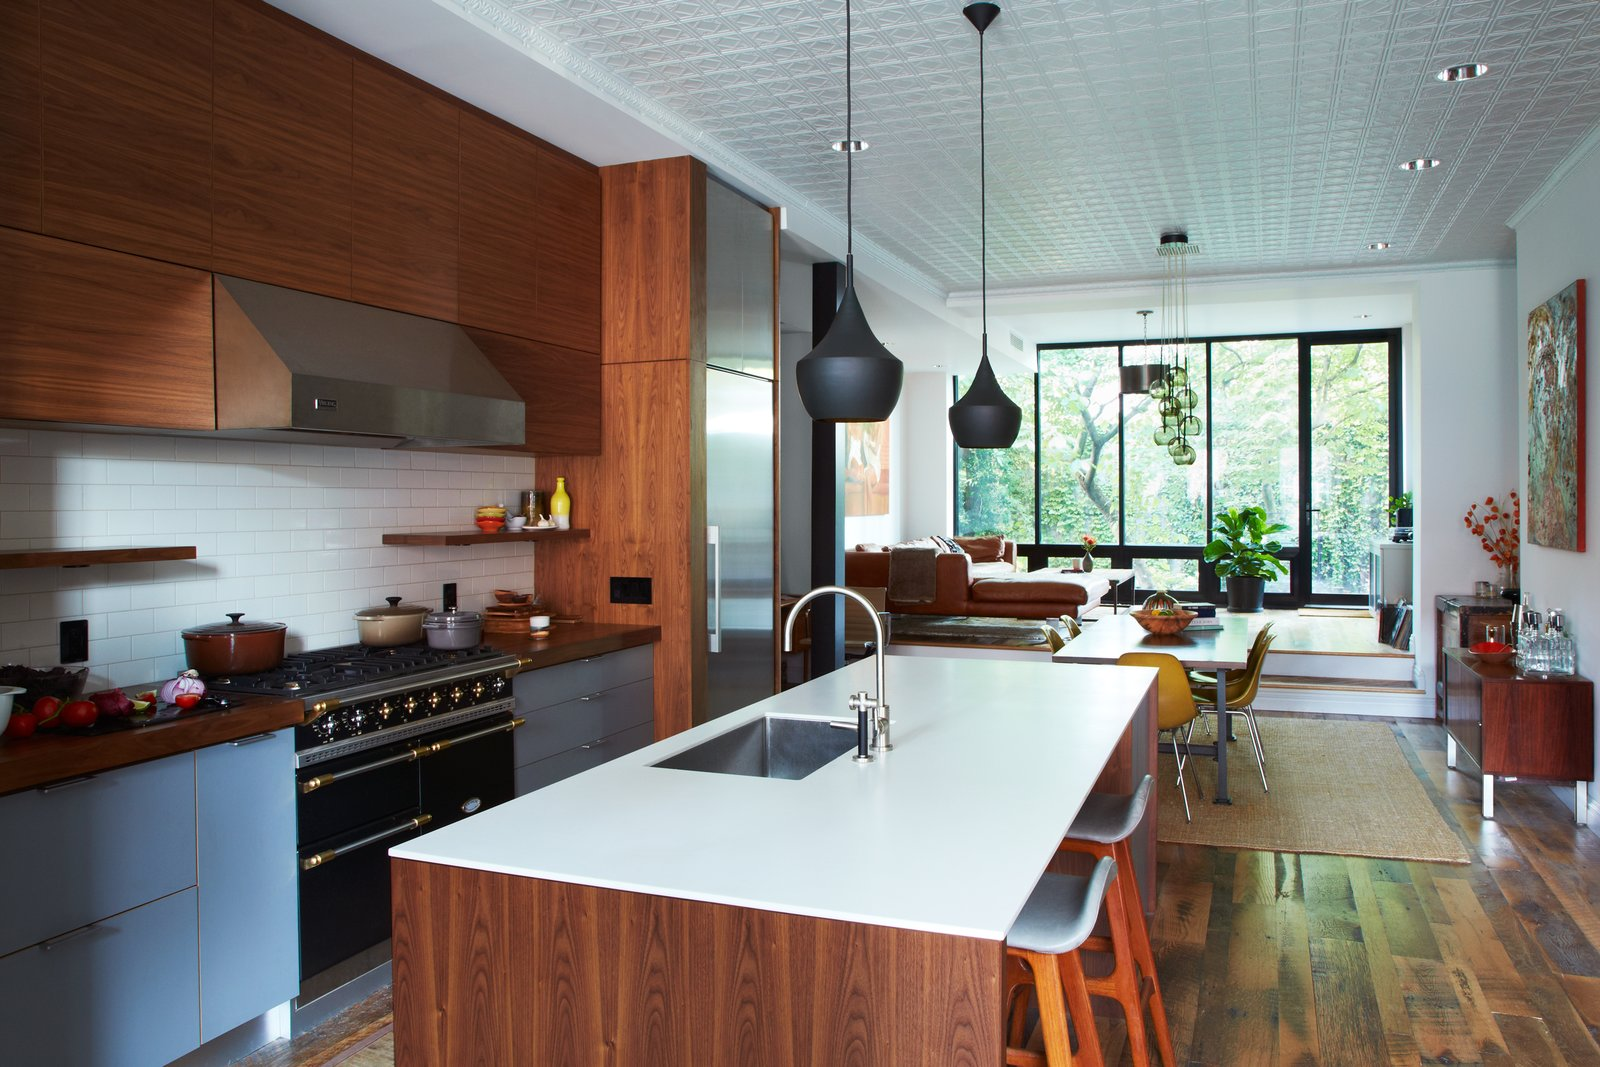 Kitchen, Range, Dark Hardwood, Subway Tile, Wood, Pendant, Recessed, Undermount, Wall Oven, Range Hood, Refrigerator, Wood, and Engineered Quartz  Best Kitchen Wall Oven Wood Undermount Recessed Engineered Quartz Range Photos from What's the Most Overlooked Feature When Planning a Kitchen Renovation?